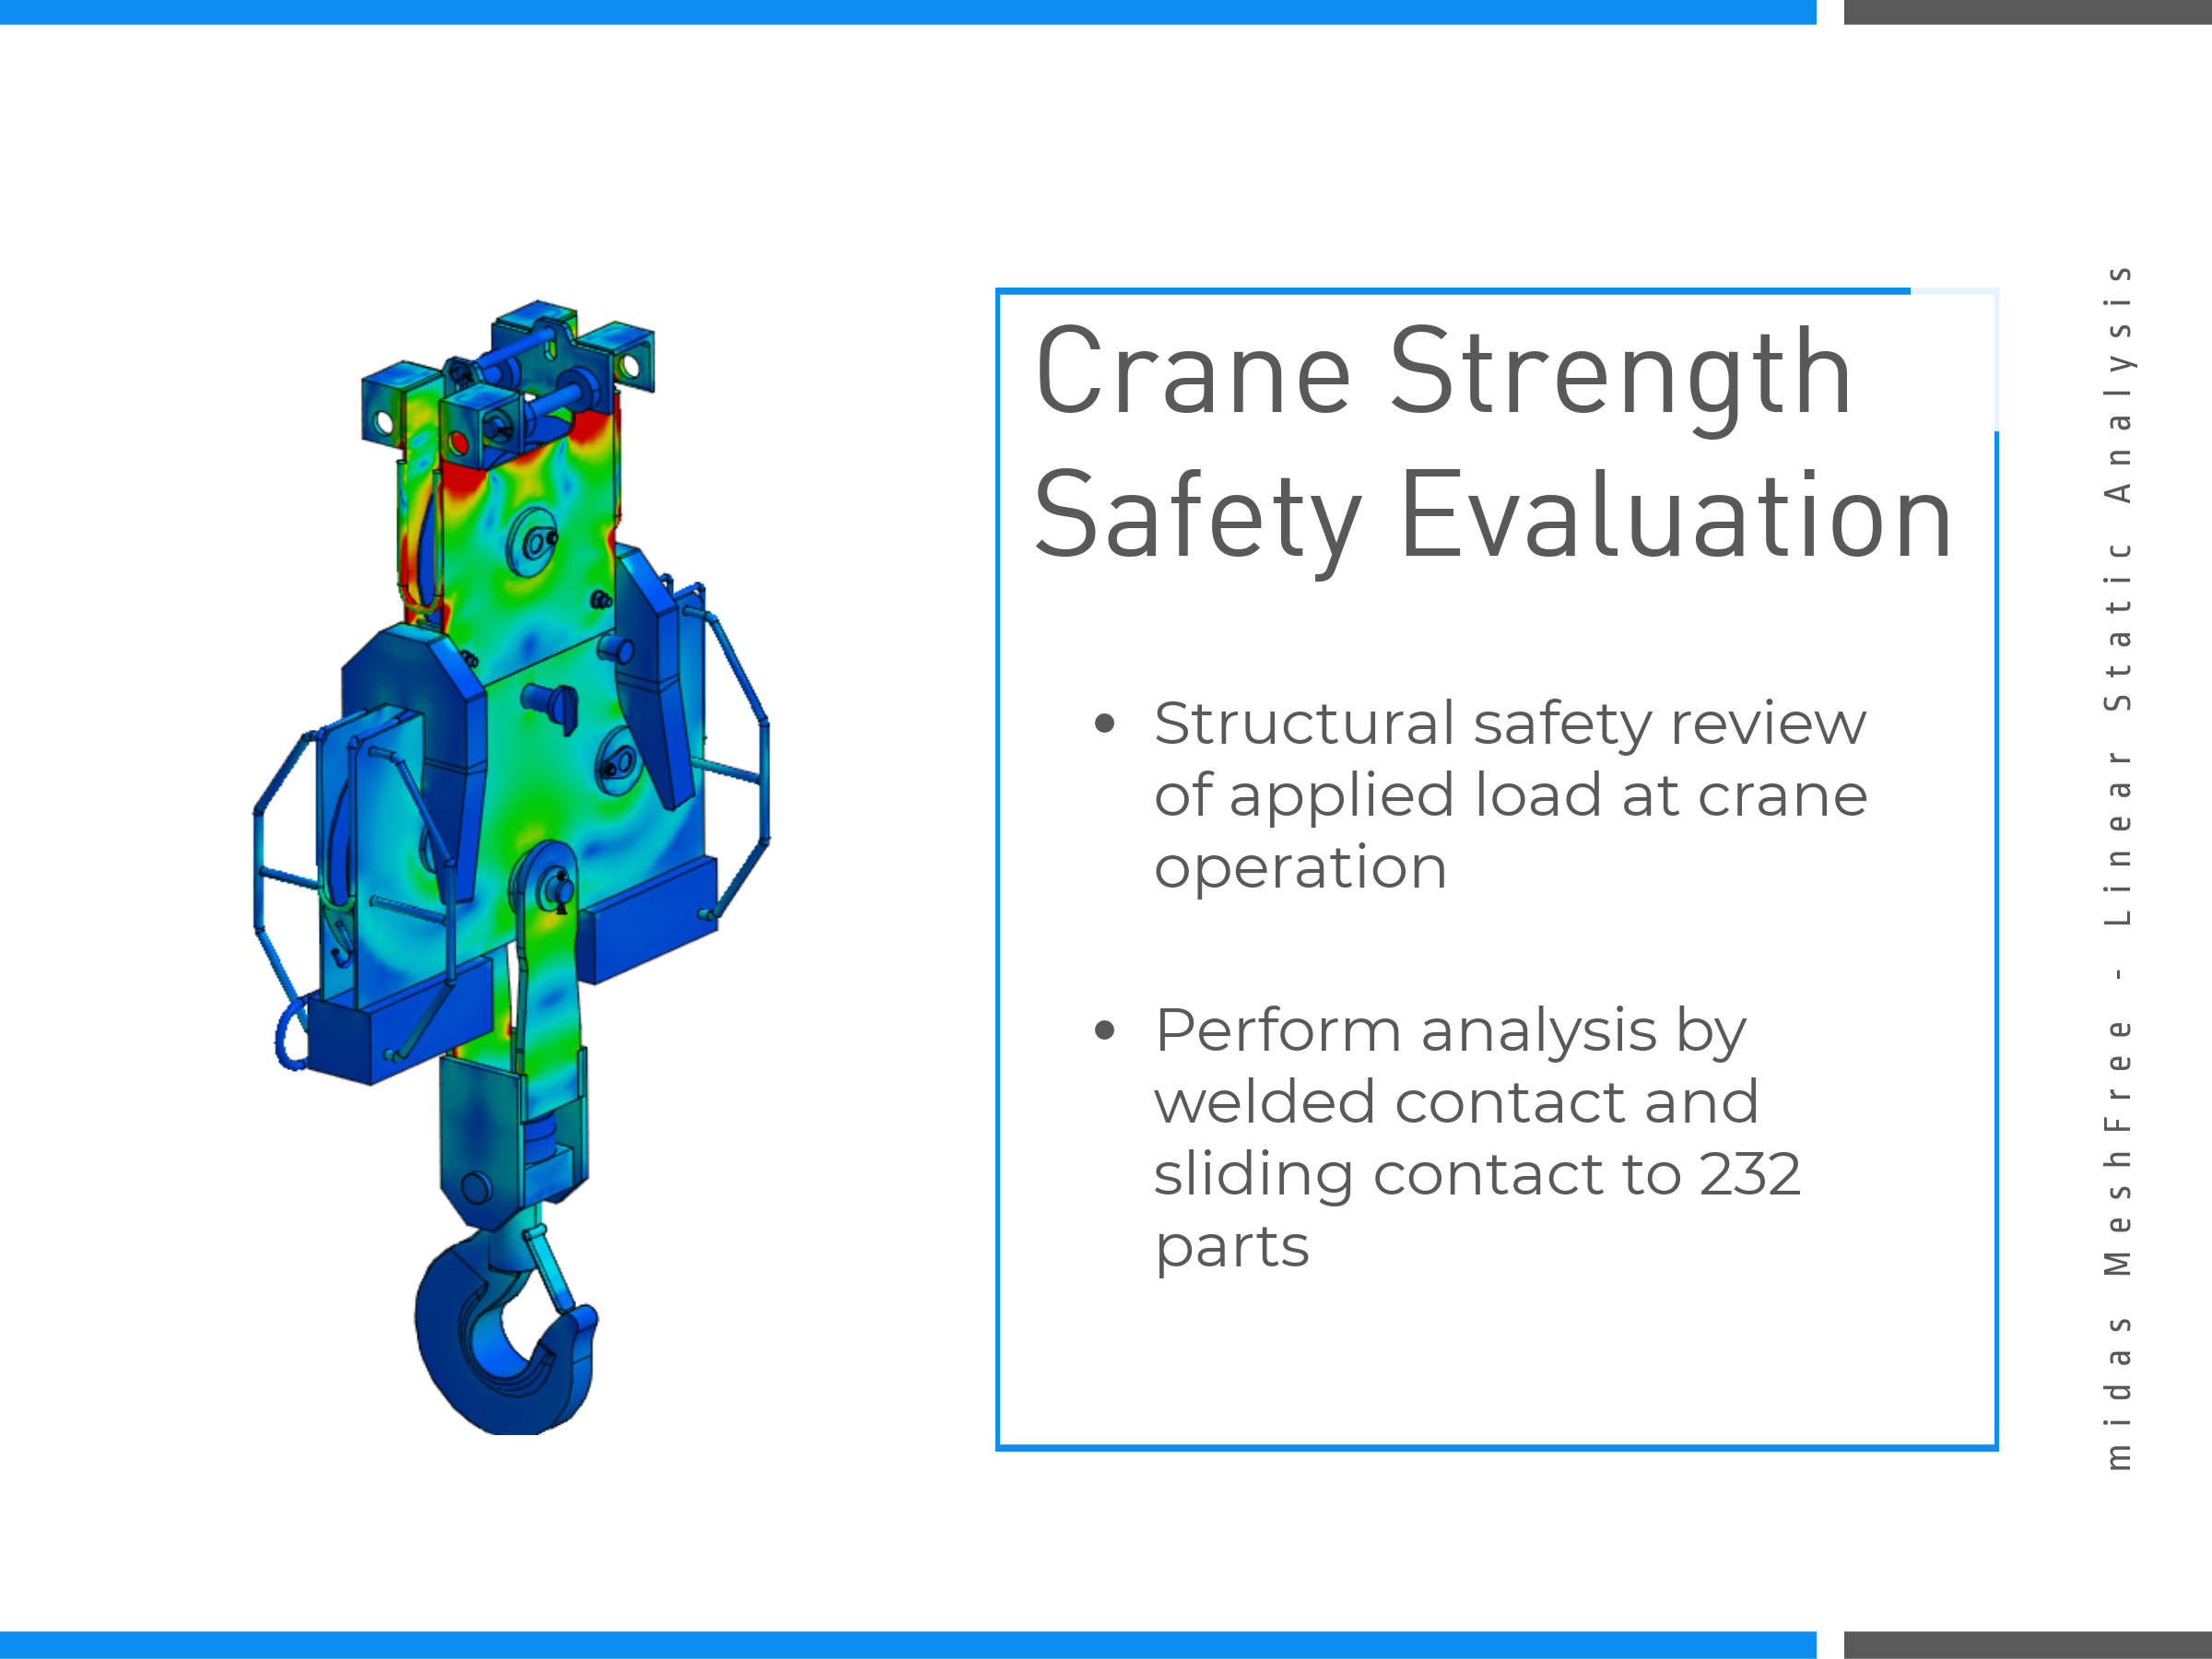 Crane Strength Safety Evaluation on MeshFree (Slide 3)